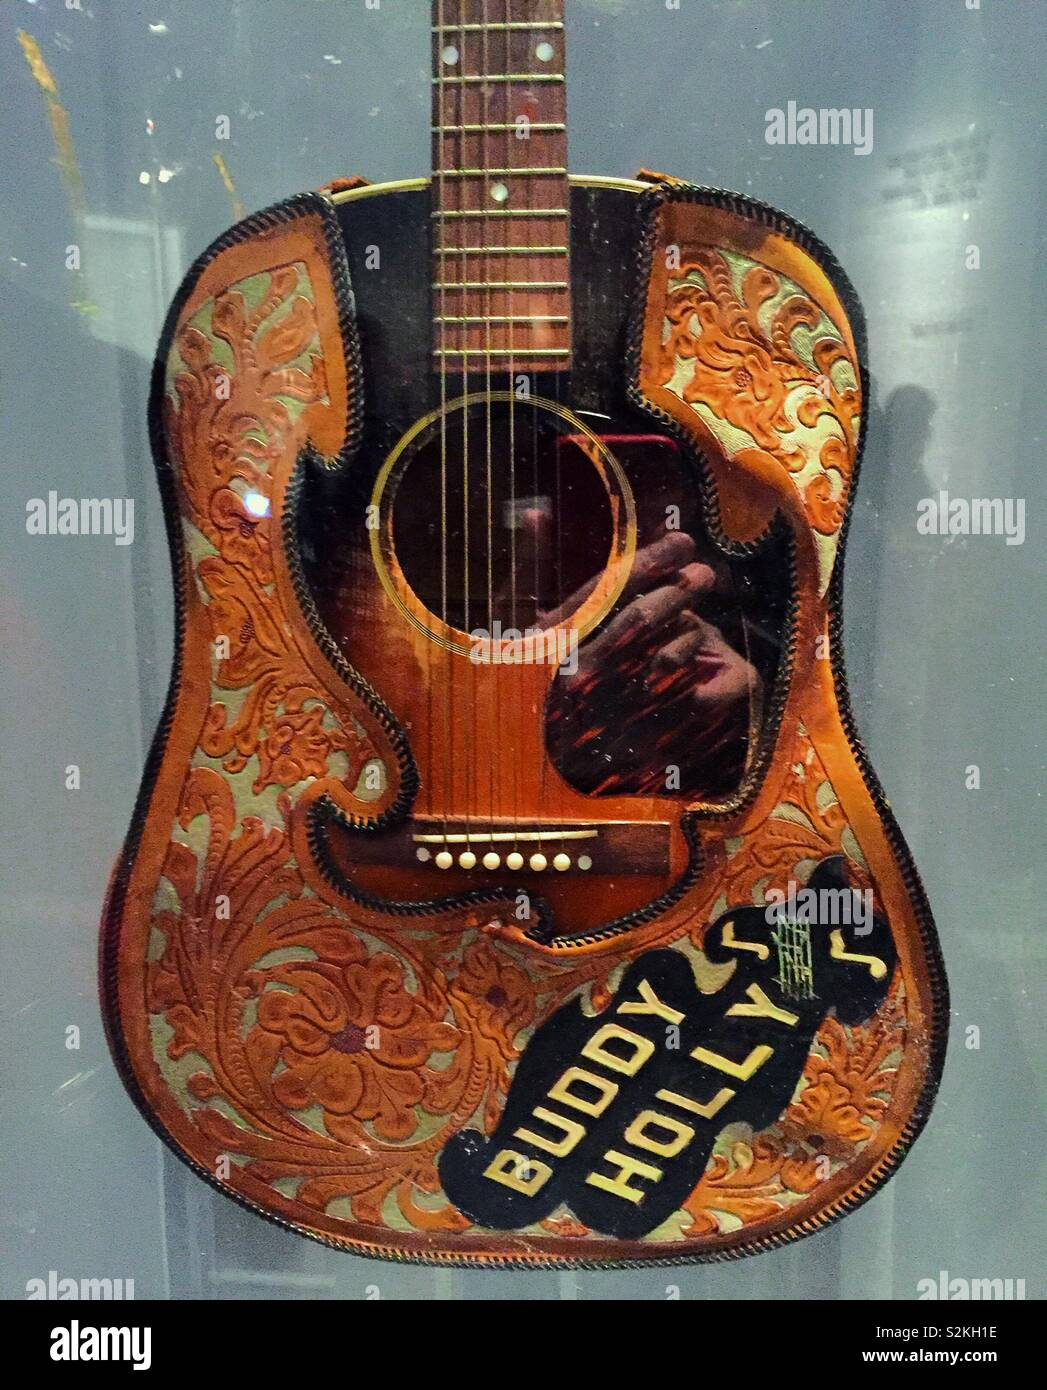 Acoustic guitar belonging to Buddy Holly with tooled leather cover, Metropolitan Museum of art, instruments of rock 'n' roll, NYC, USA - Stock Image